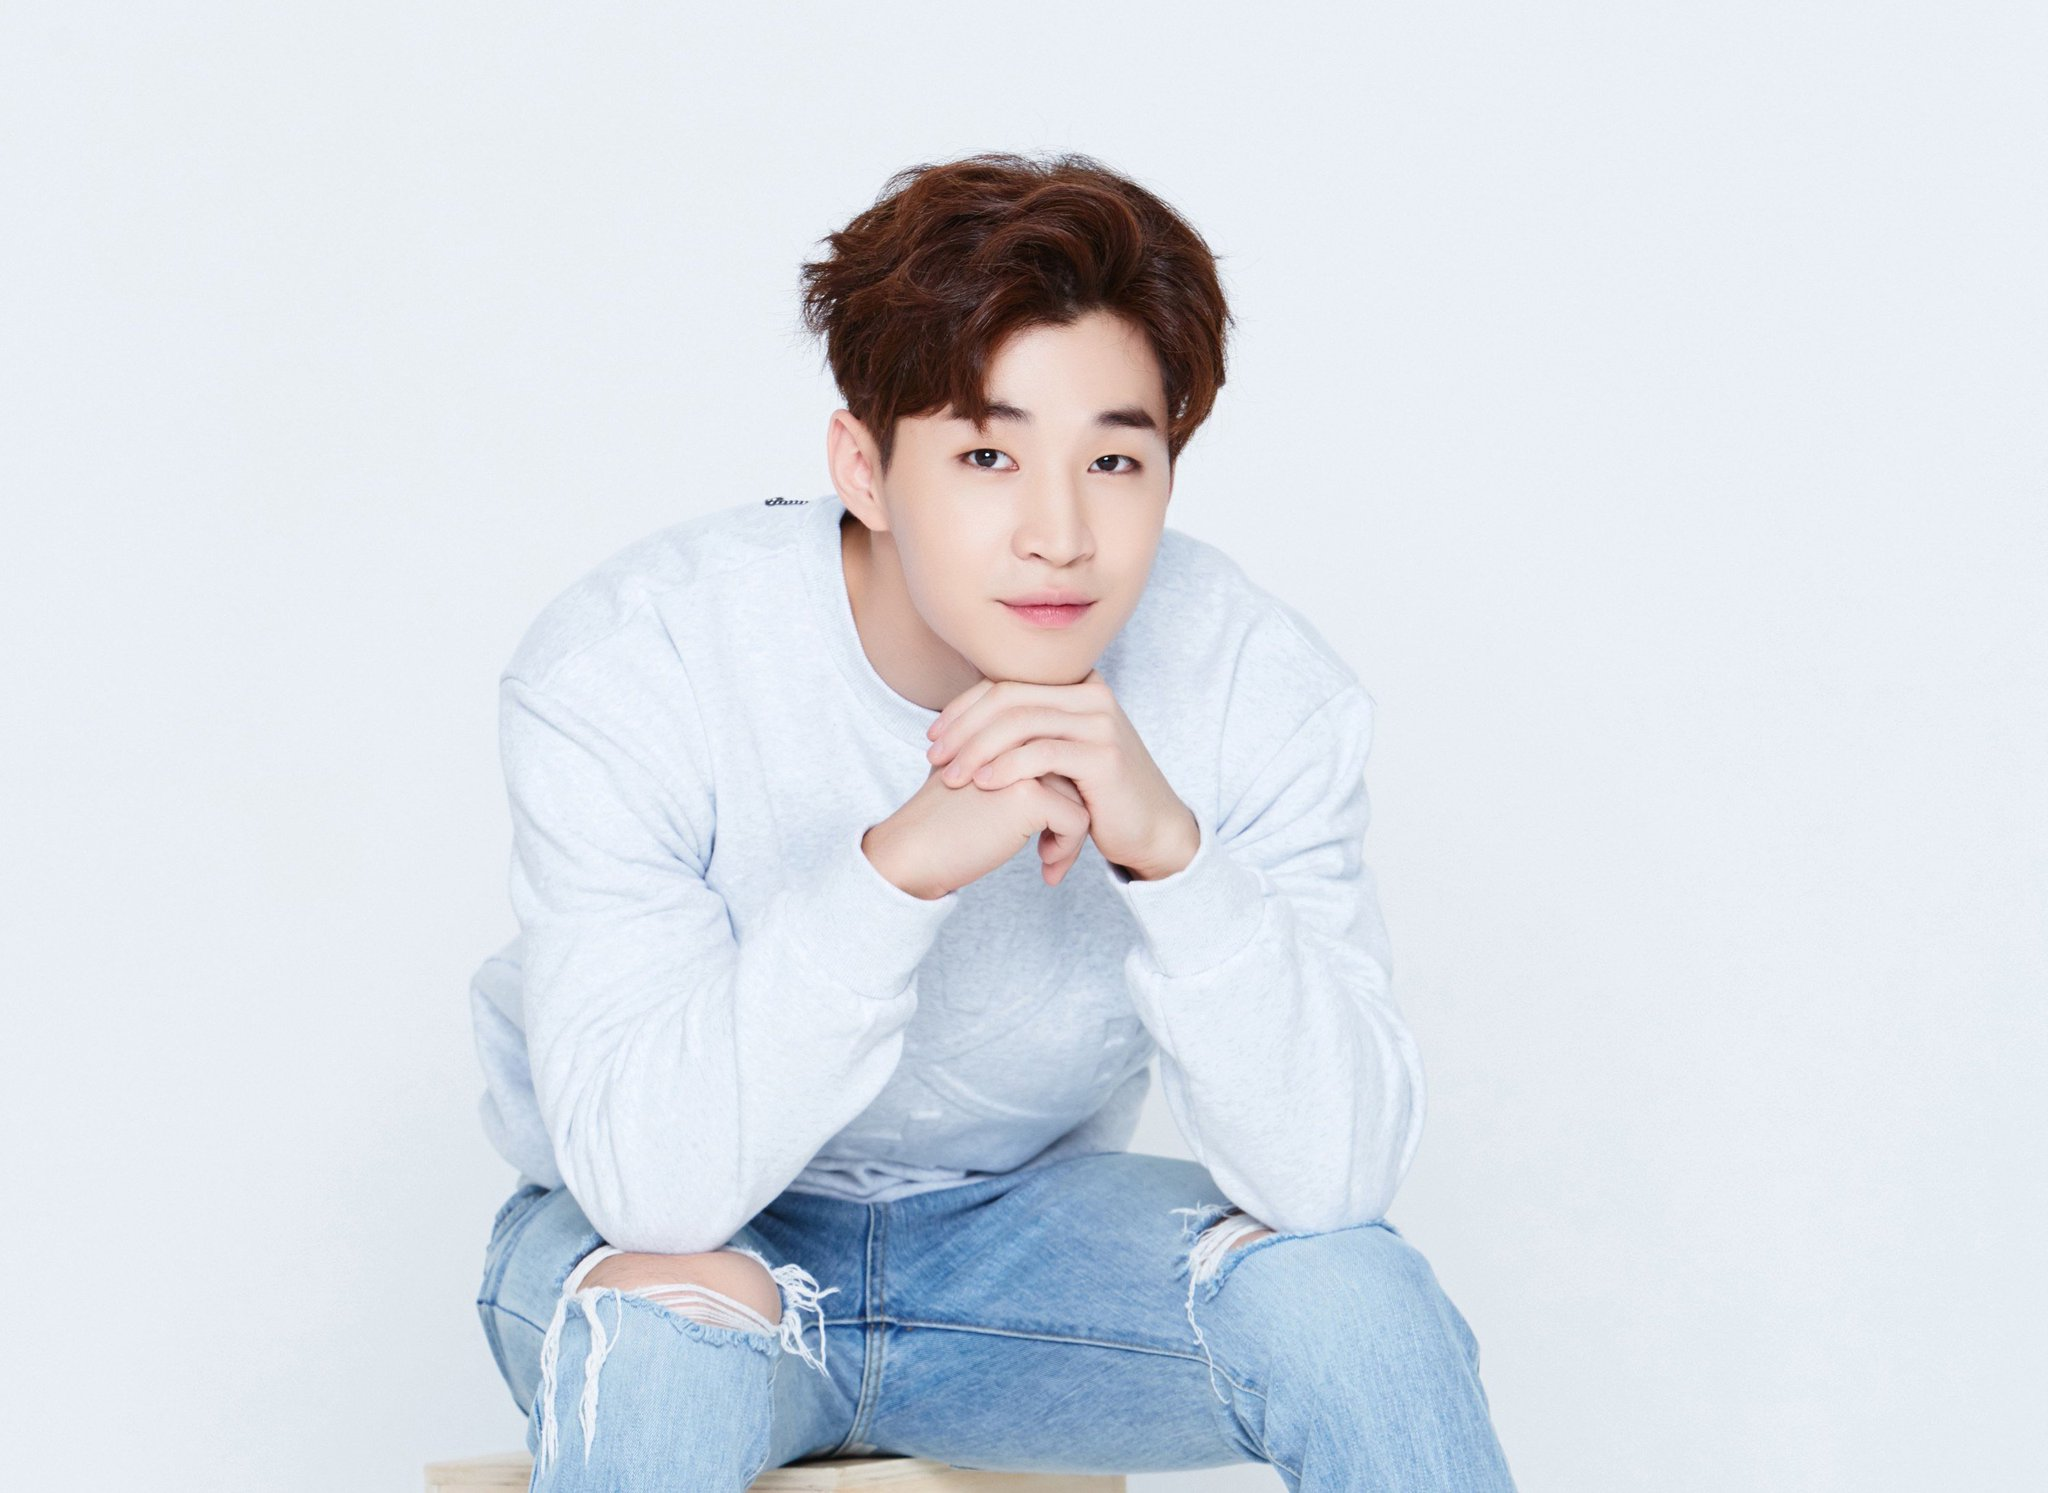 Happy Birthday Henry Lau    Hopefully Longevity And Healthy Always